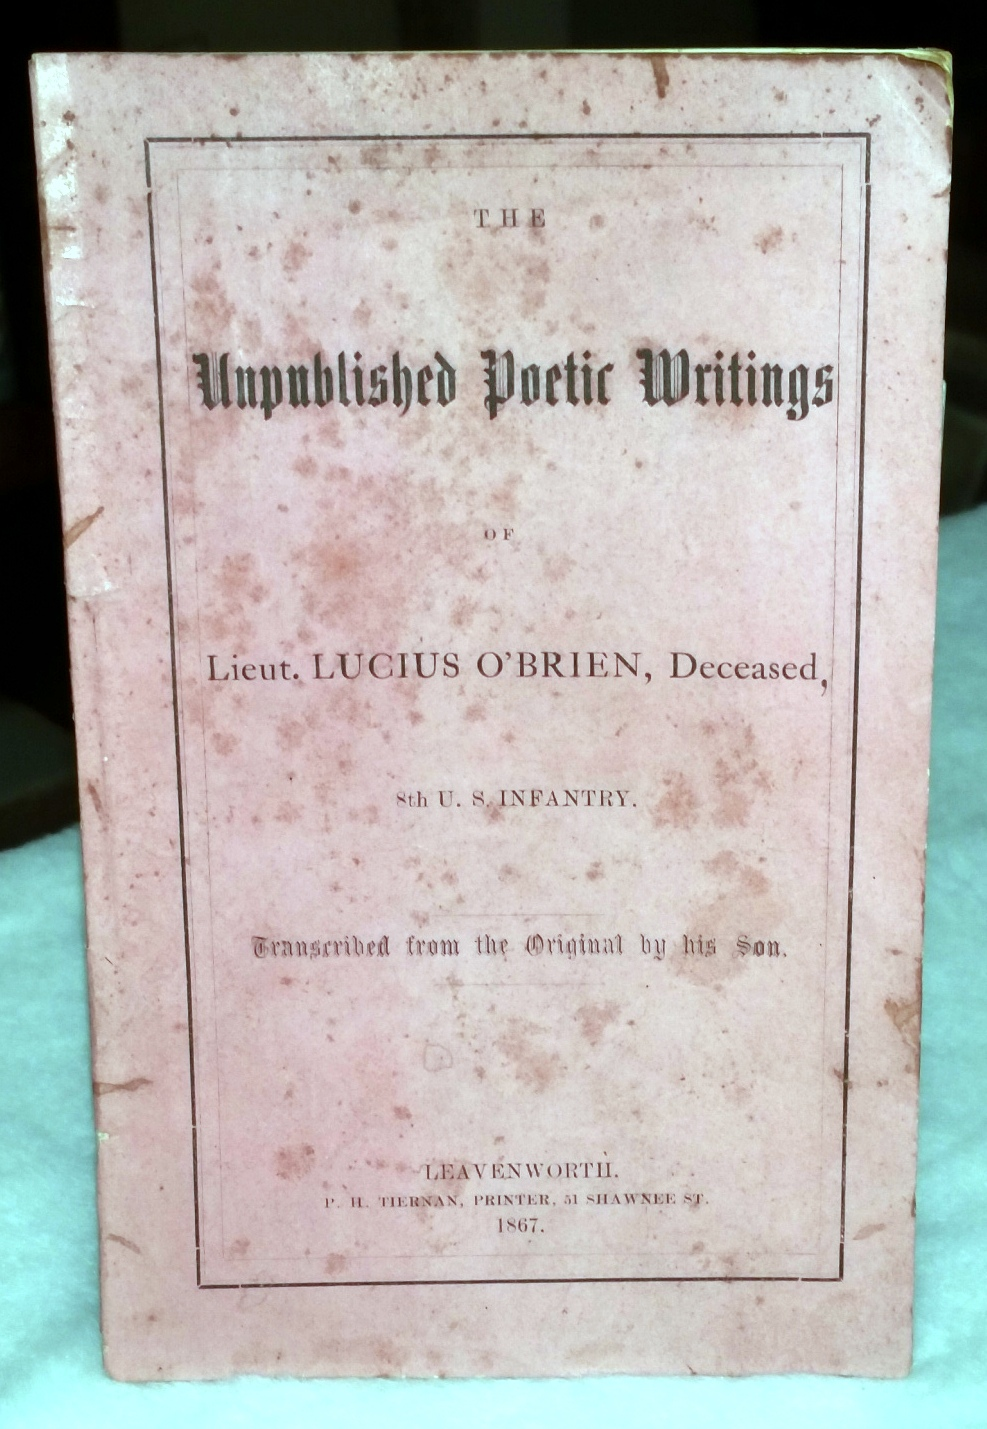 Image for The Unpublished Poetic Writings of Lieut. Lucius O'Brien, Deceased, 8th U.S. Infantry [including Original 16 Stanzas of Benny Havens O! (Oh!), Plus the tribute Stanza added upon the Writer's death]